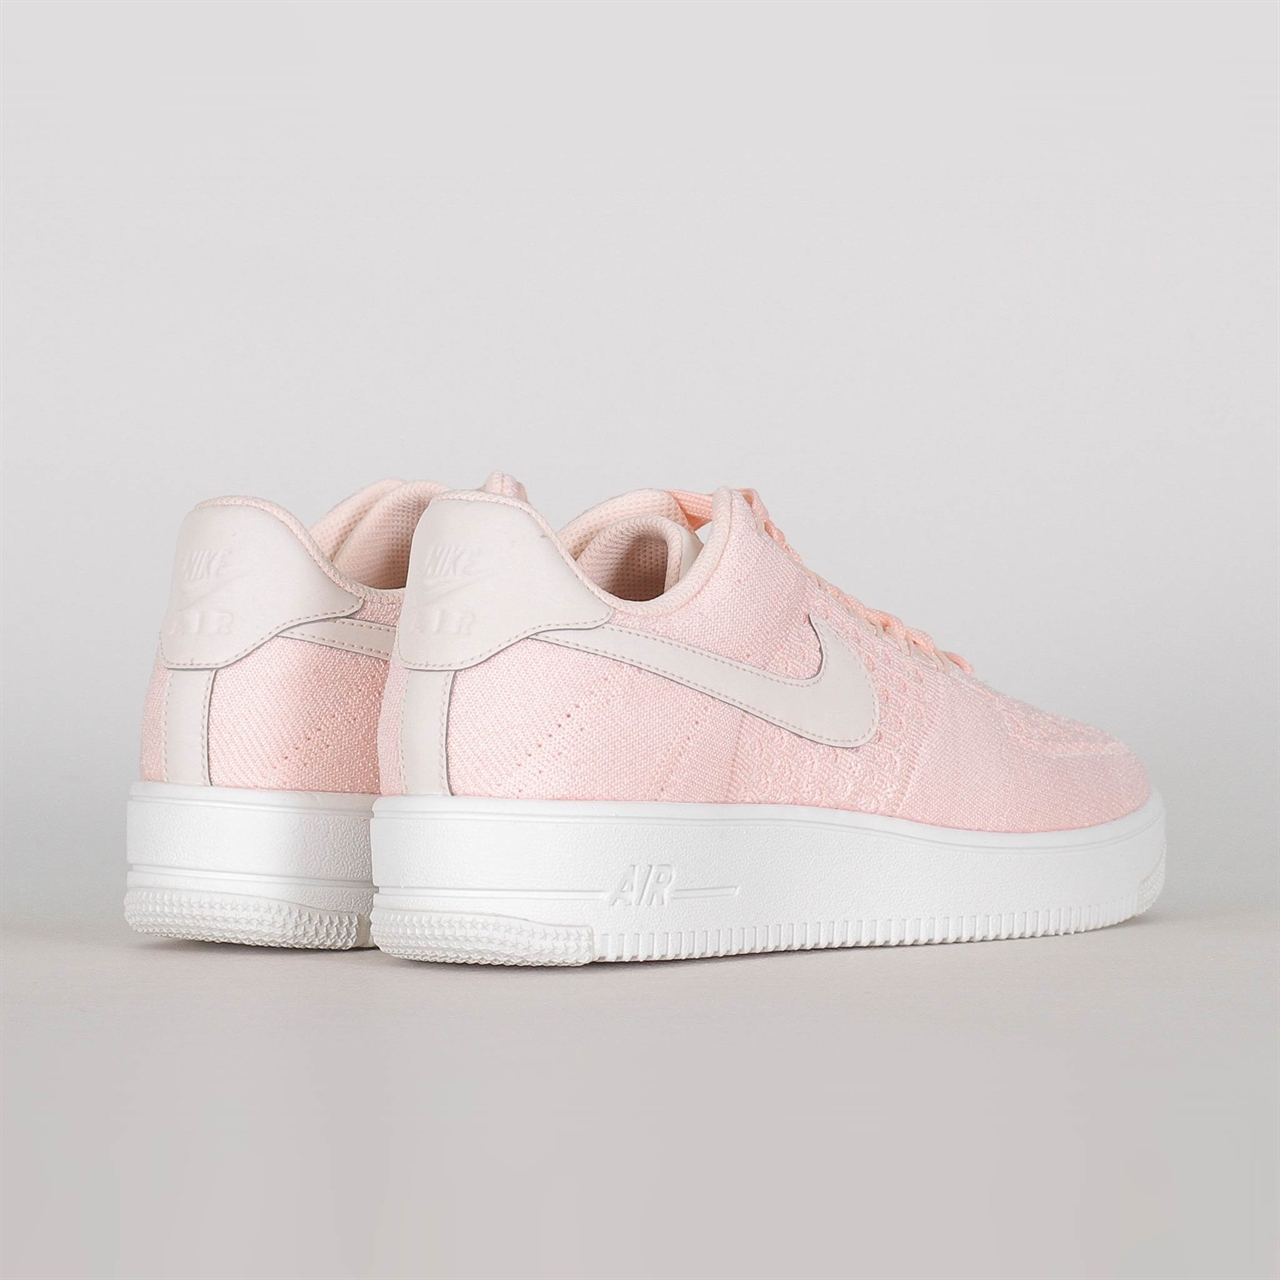 69dec6f970cb Nike SportswearNike Sportswear Air Force 1 Ultra Flyknit Low (817419-601). 1